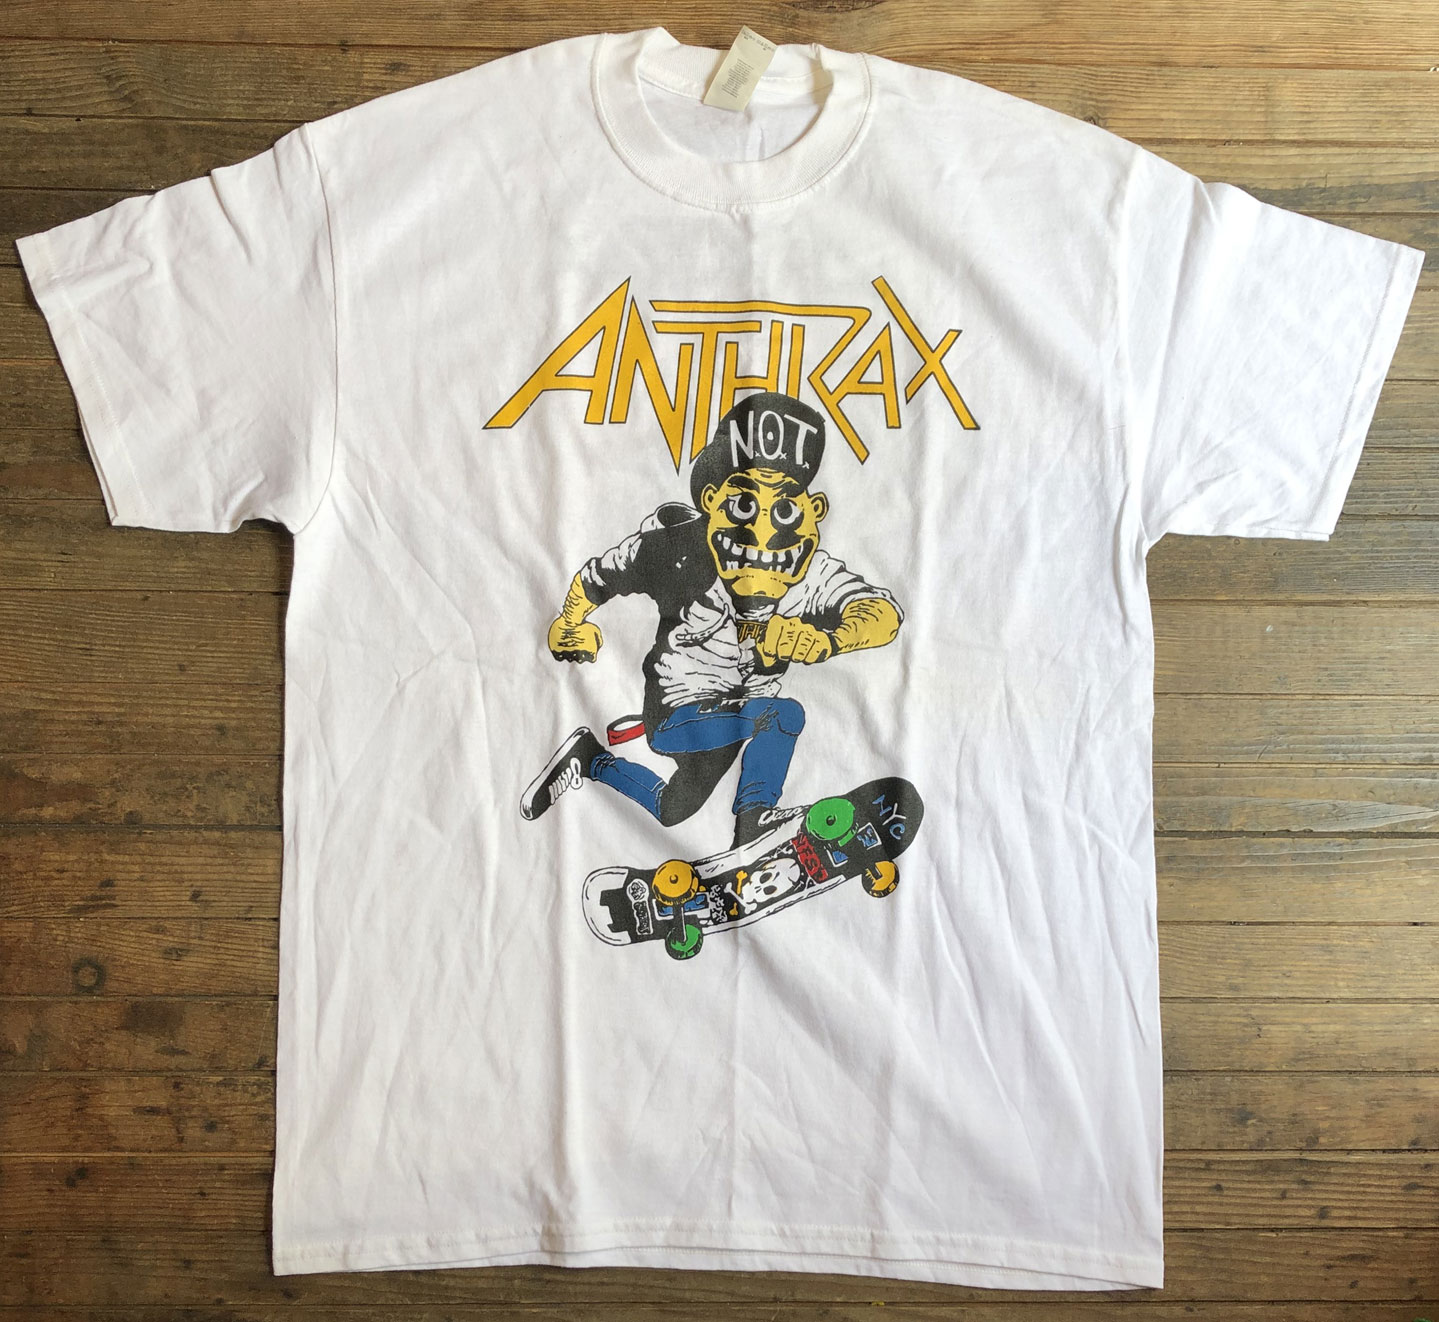 USED! ANTHRAX Tシャツ SKATE